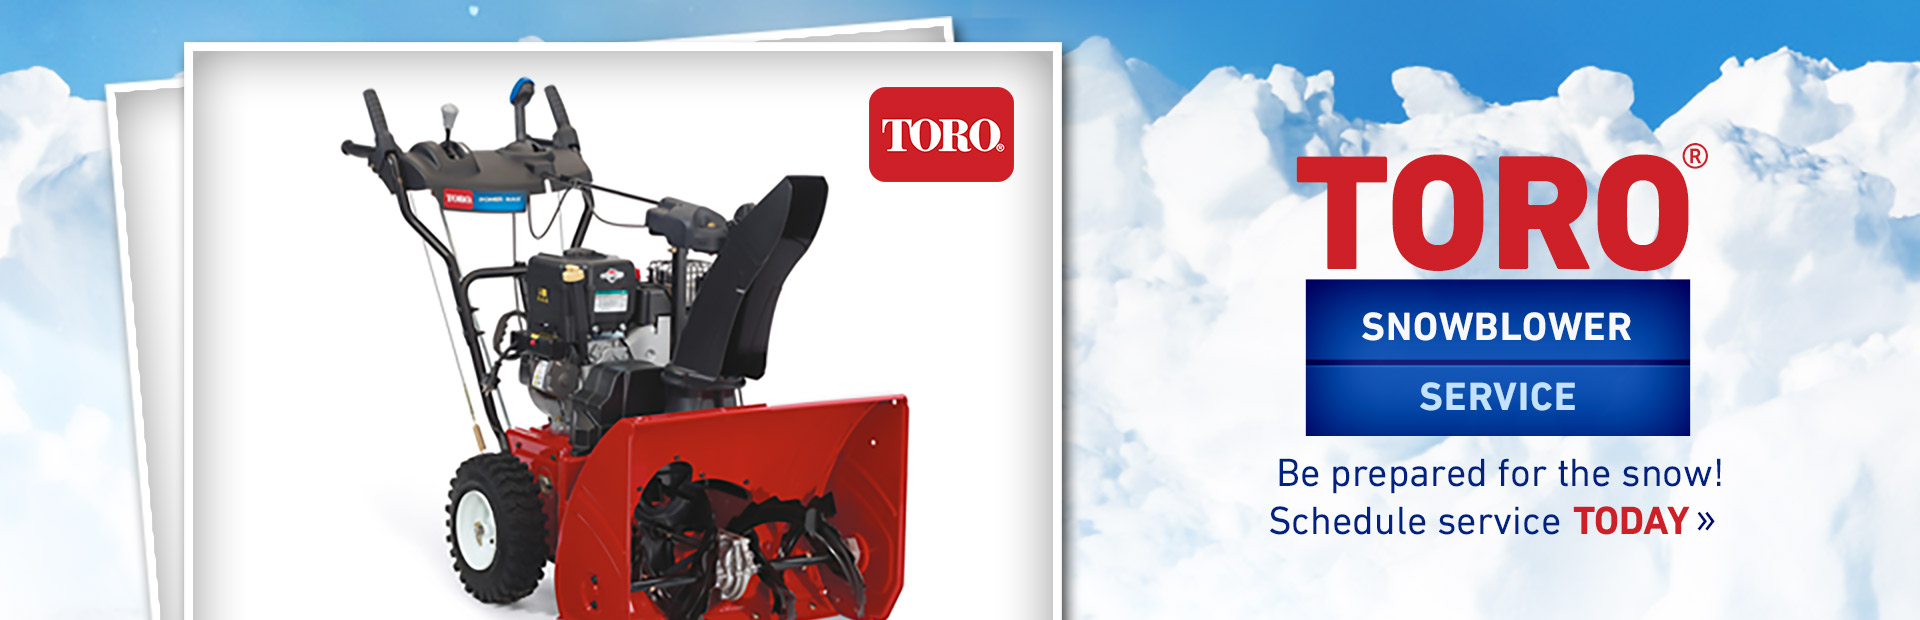 Toro Snowblower Service: Click here to view our service list!